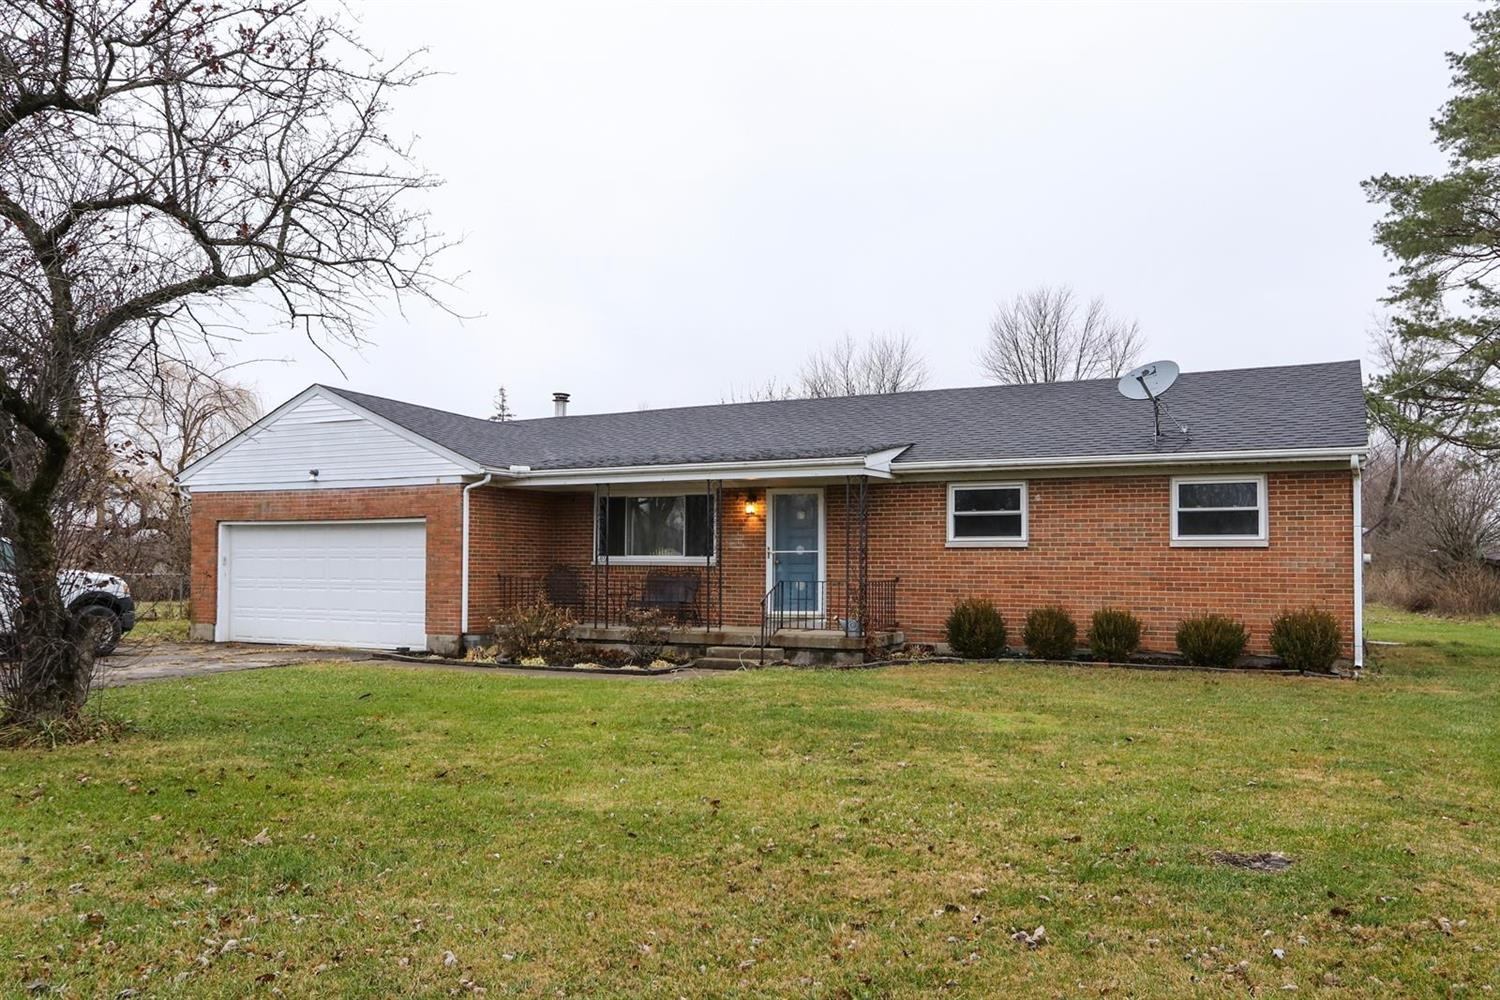 Property for sale at 480 E Old Route 122, Clearcreek Twp.,  Ohio 45036